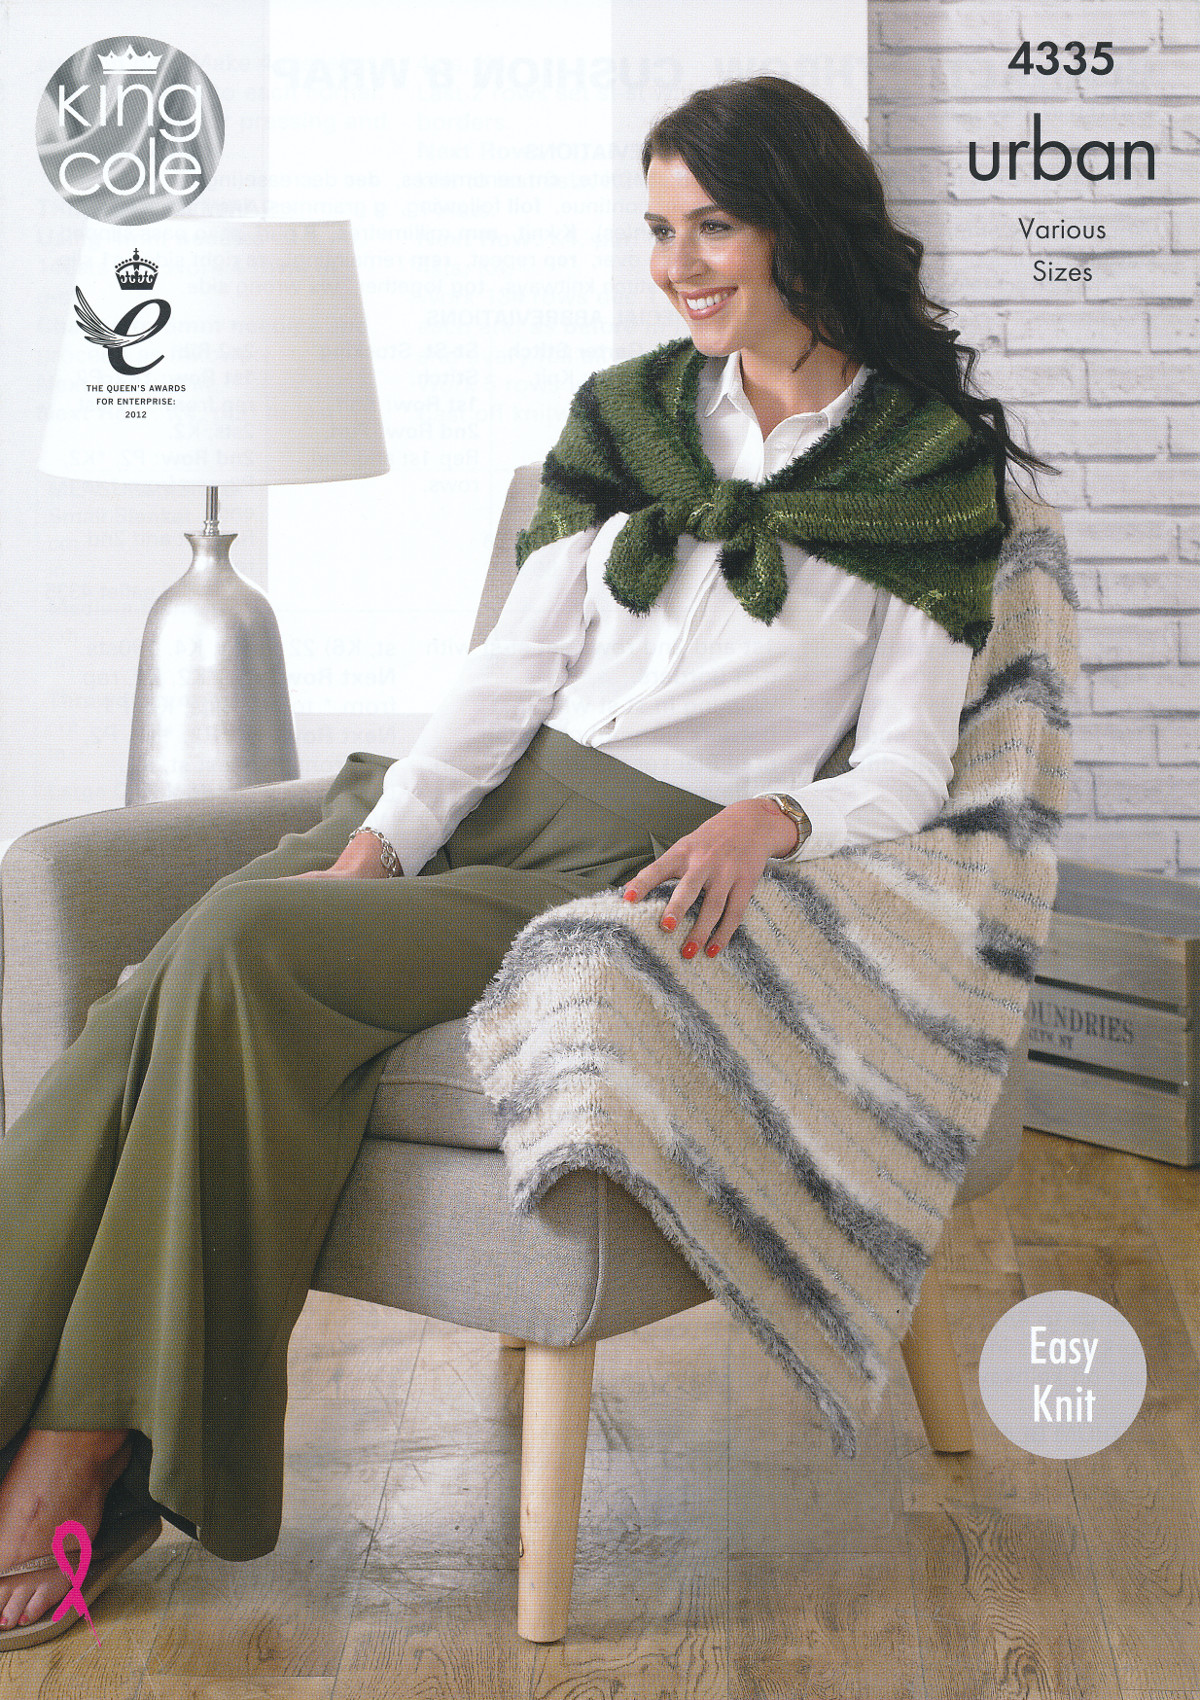 King Cole Urban Knitting Pattern Throw Blankets Cushion & Wrap Easy Knit ...